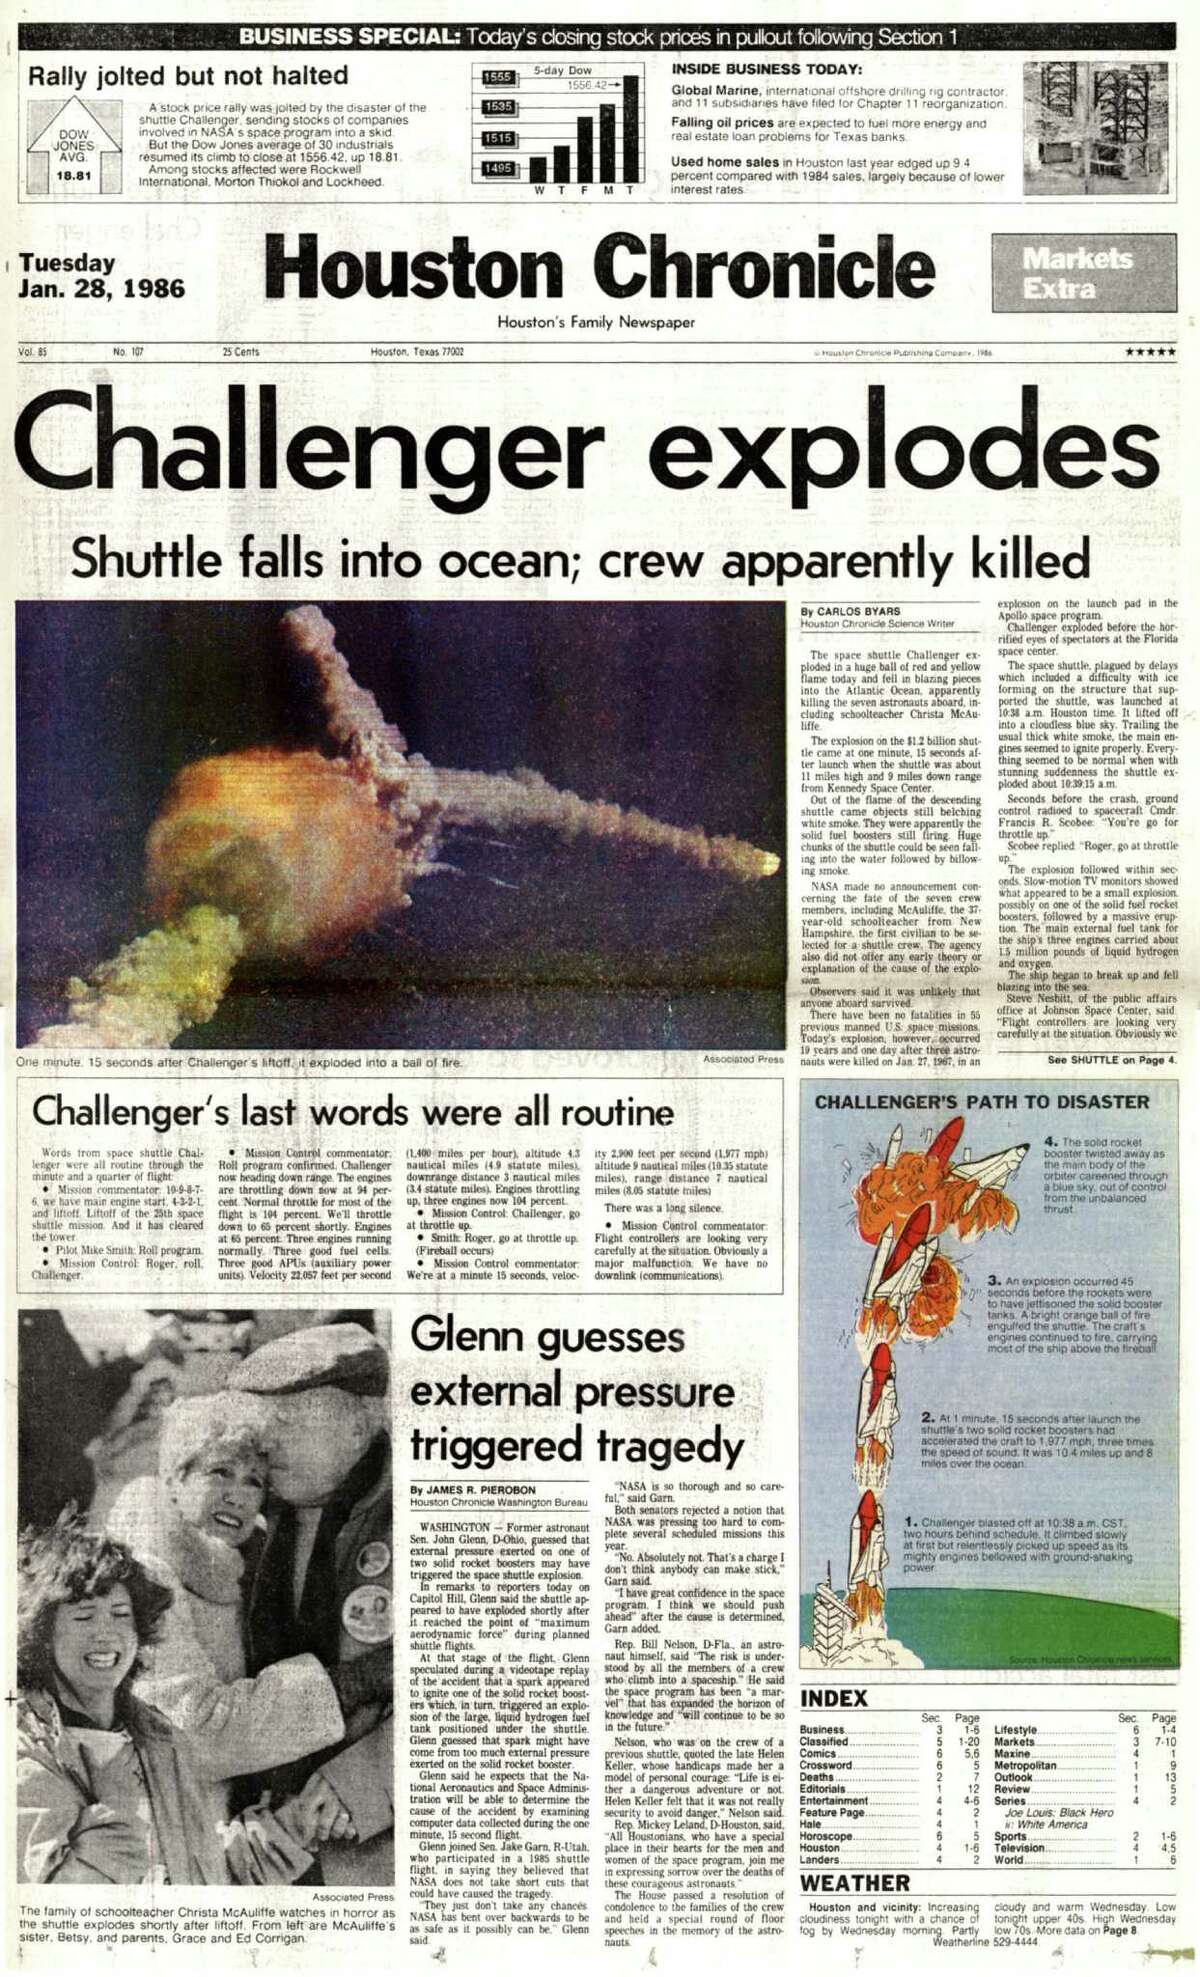 Houston Chronicle front page (HISTORIC) -- January 28, 1986 MARKETS EXTRA (space shuttle Challenger explosion) -- Challenger explodes. Shuttle falls into ocean; crew apparently killed. HOUCHRON CAPTION (02/01/2003): The Chronicle's extra edition on the afternoon of Jan. 28, 1986. HOUSTON CHRONICLE EXTRA: SHUTTLE DISASTER.